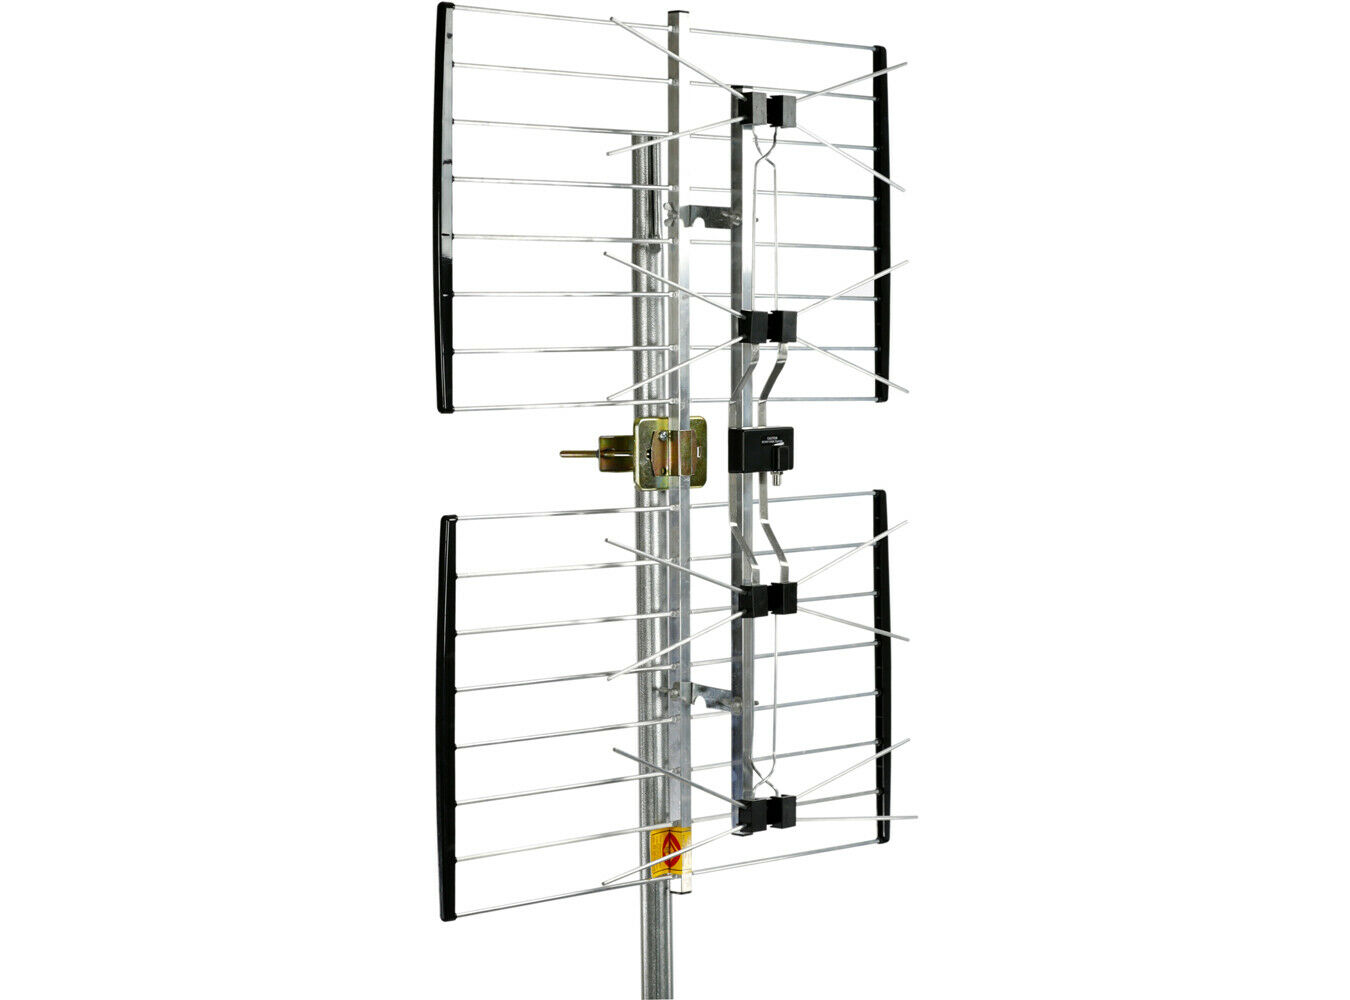 CM-4221HD channelmasteroutlet Channel Master ULTRAtenna Outdoor TV Antenna Multi-Directional 60 Mile CM-4221HD